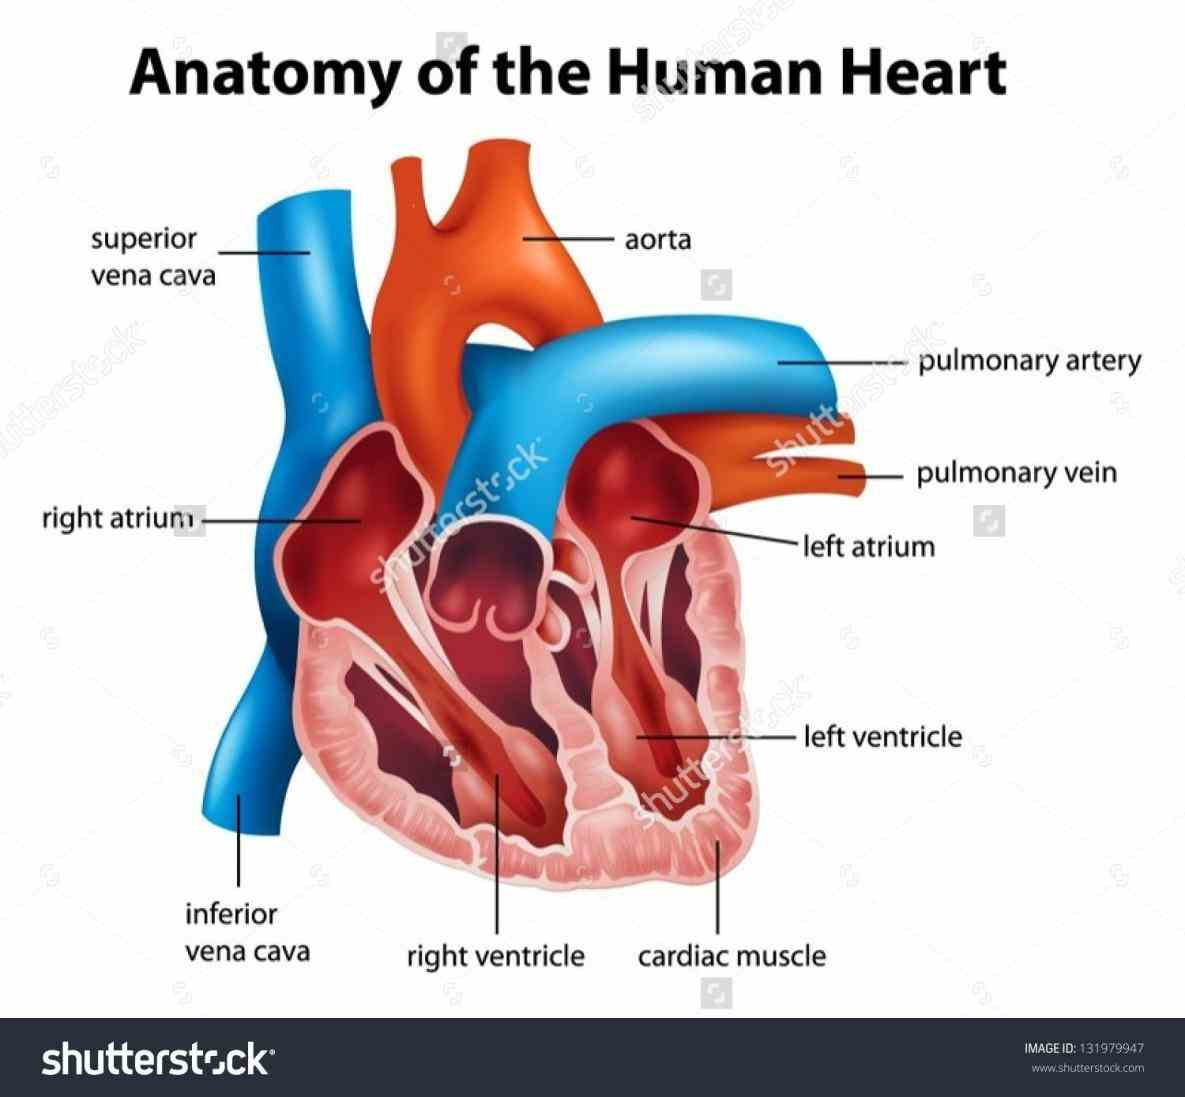 muscular organ in humans and other animals which pumps blood through heart; fish; invertebrates additional images; notes; references; bibliography;